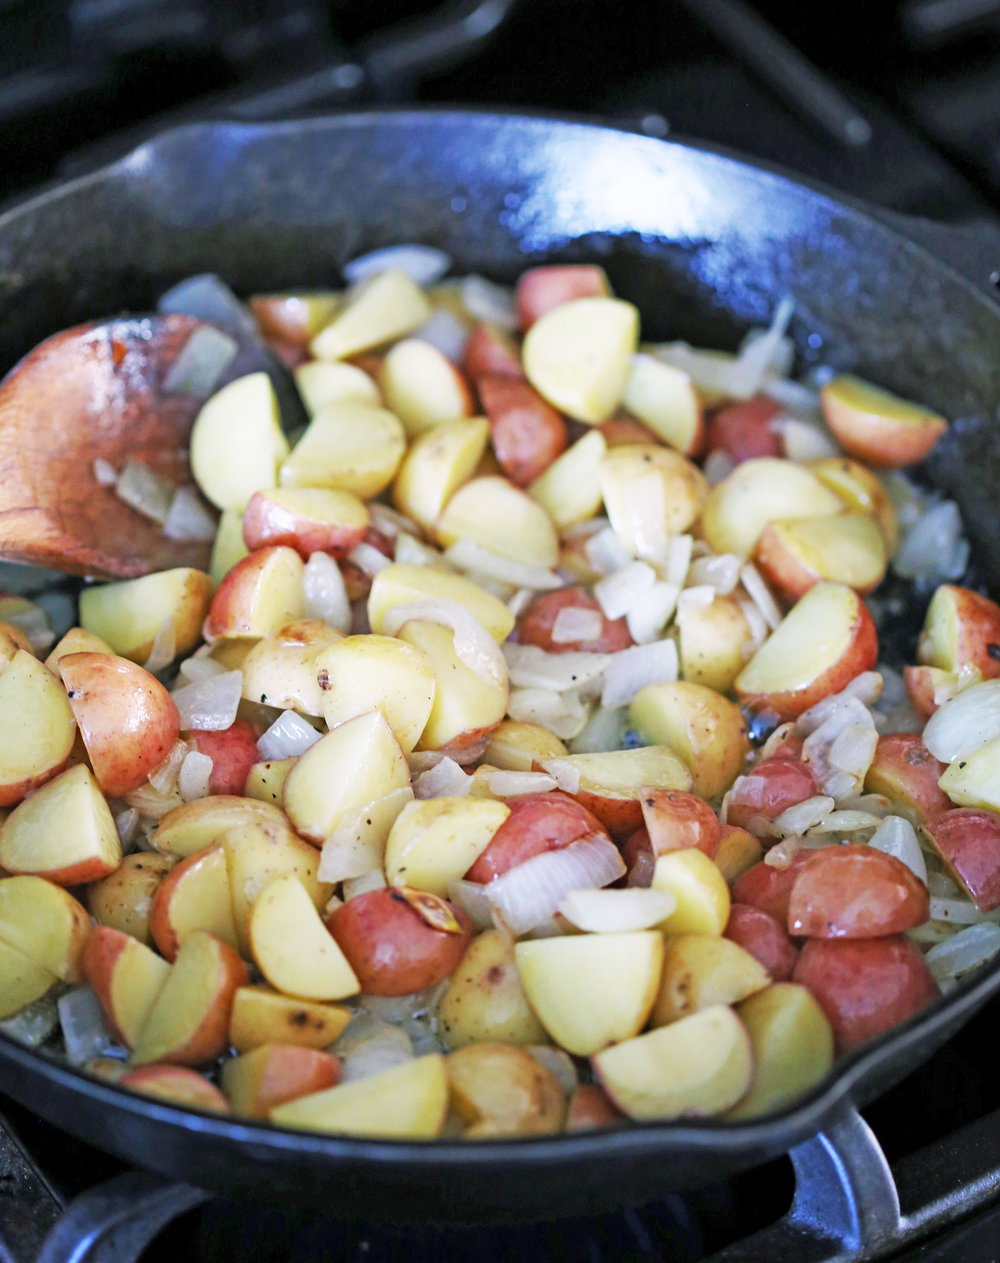 Sautéed onions and chopped baby potatoes in a cast iron skillet.